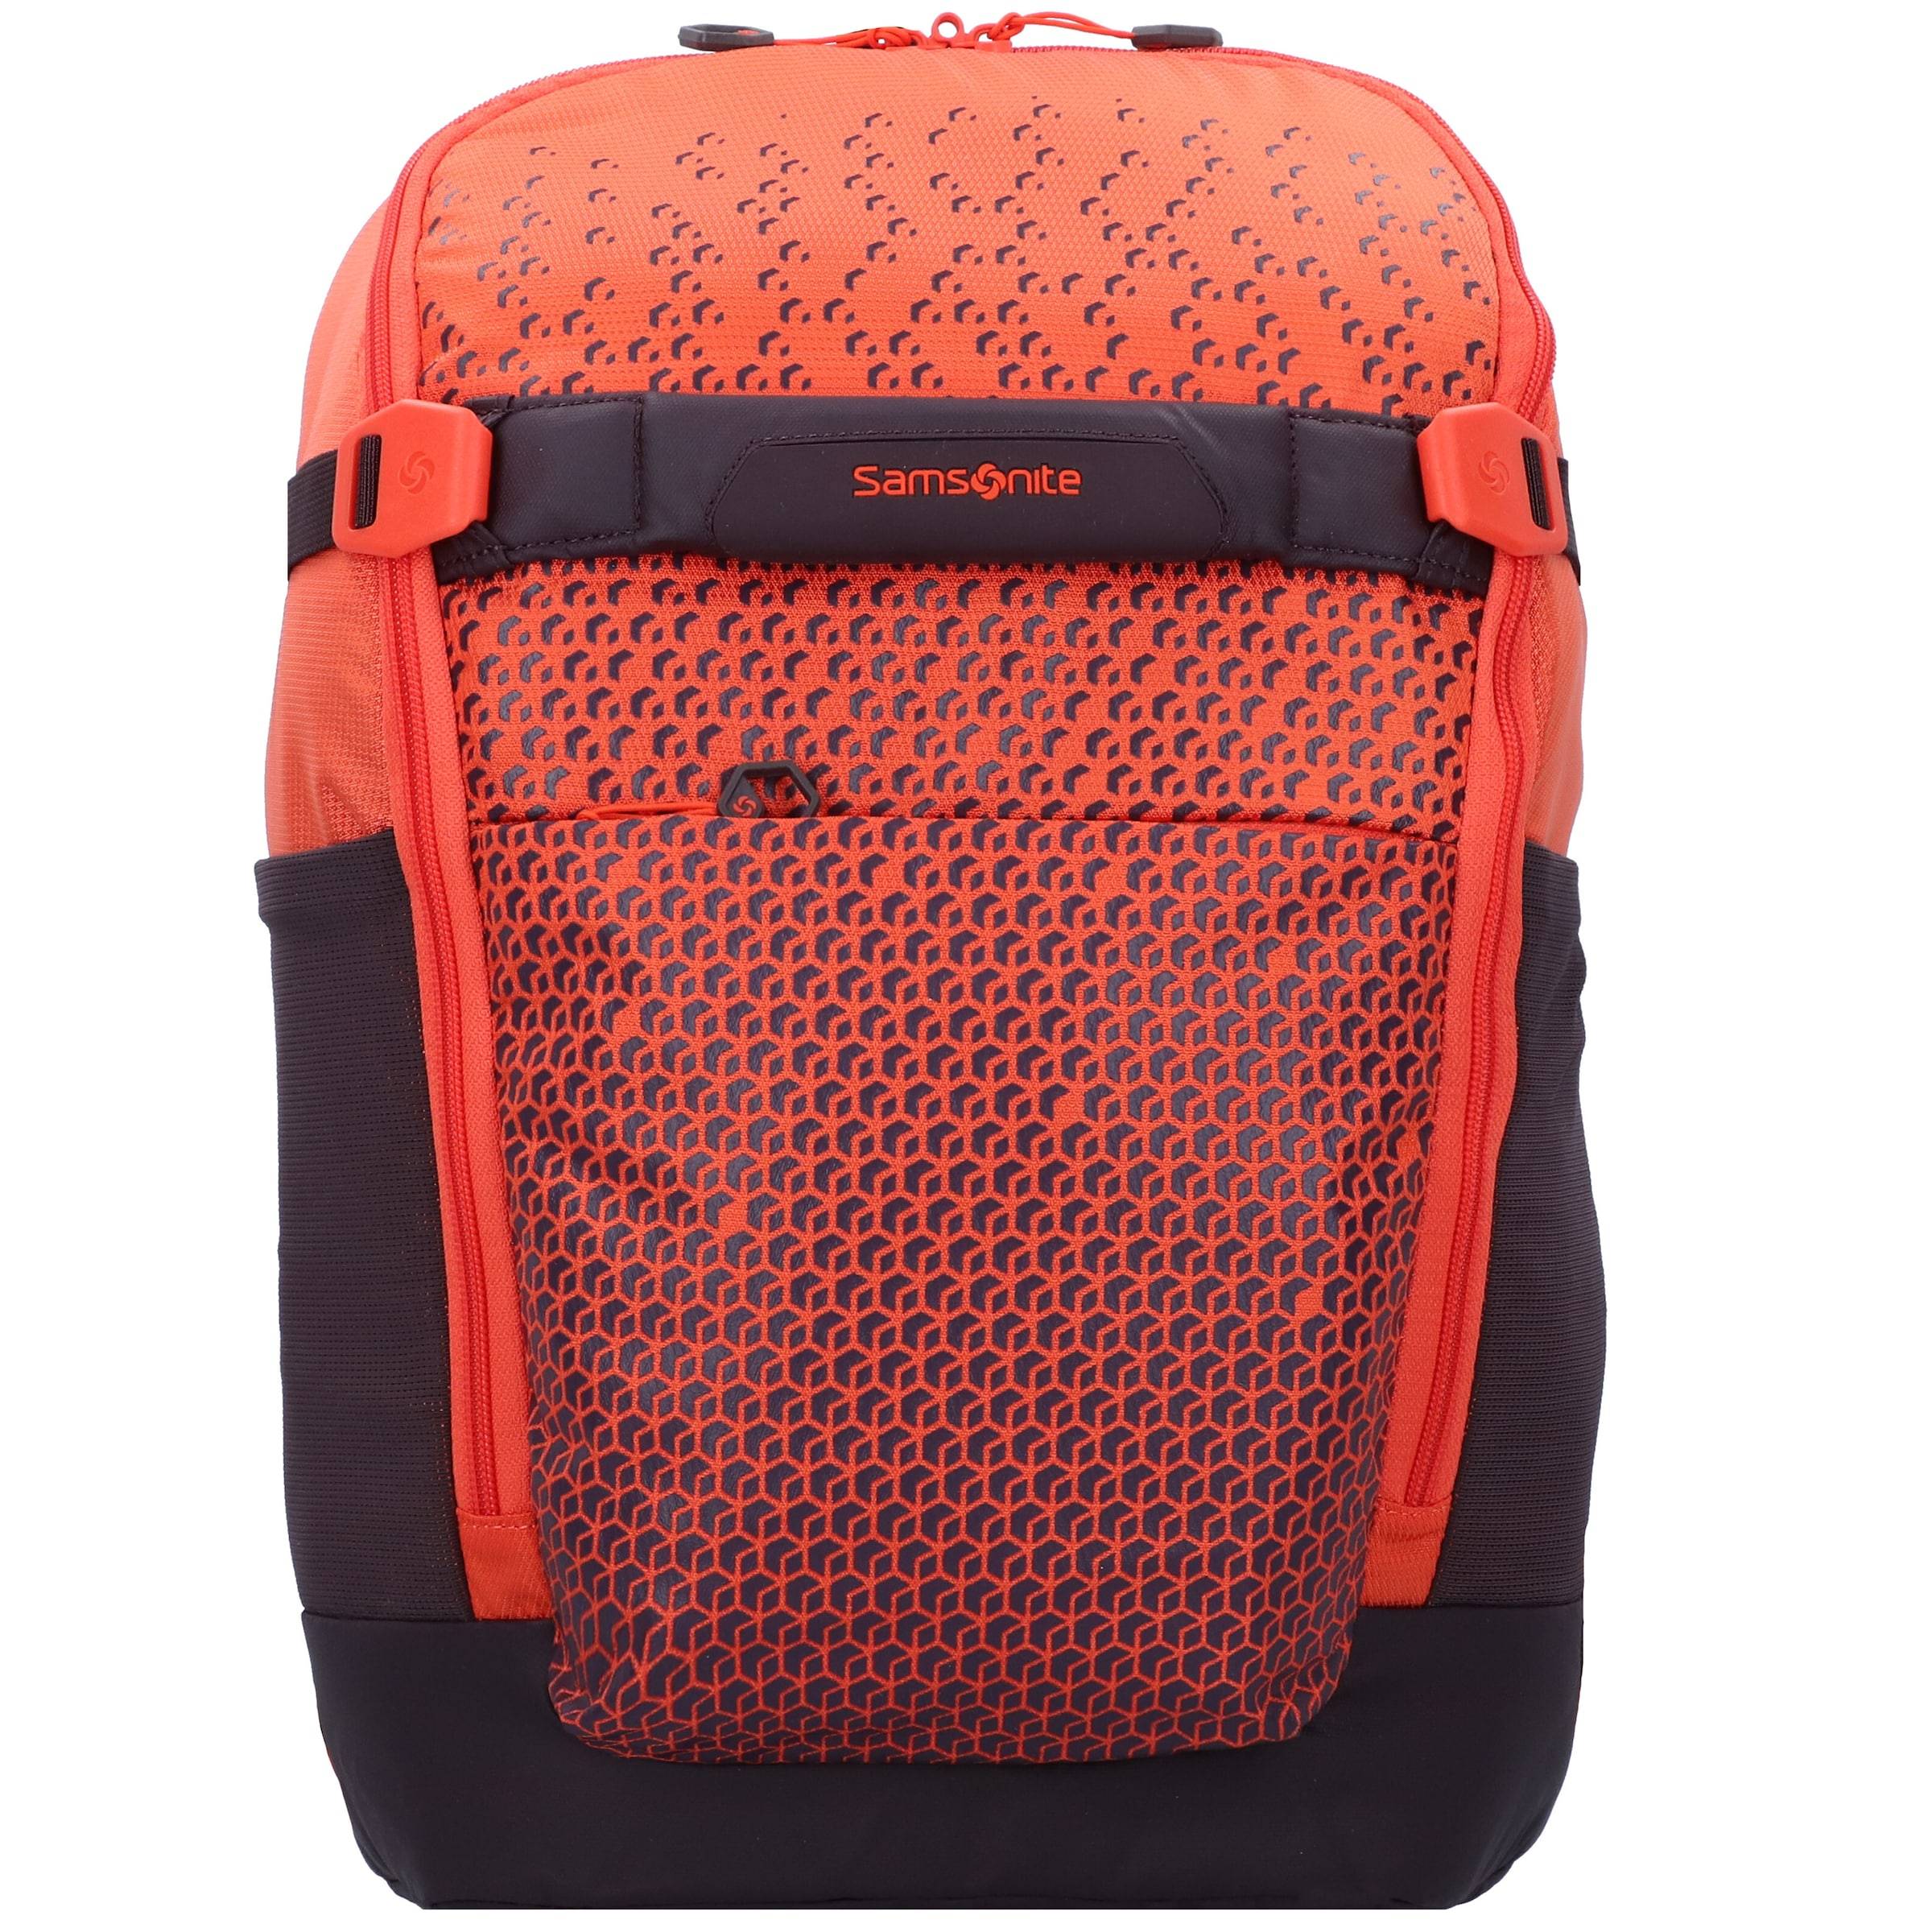 GraphitKoralle packs' Samsonite 'hexa Rucksack In L3Rj54Acq